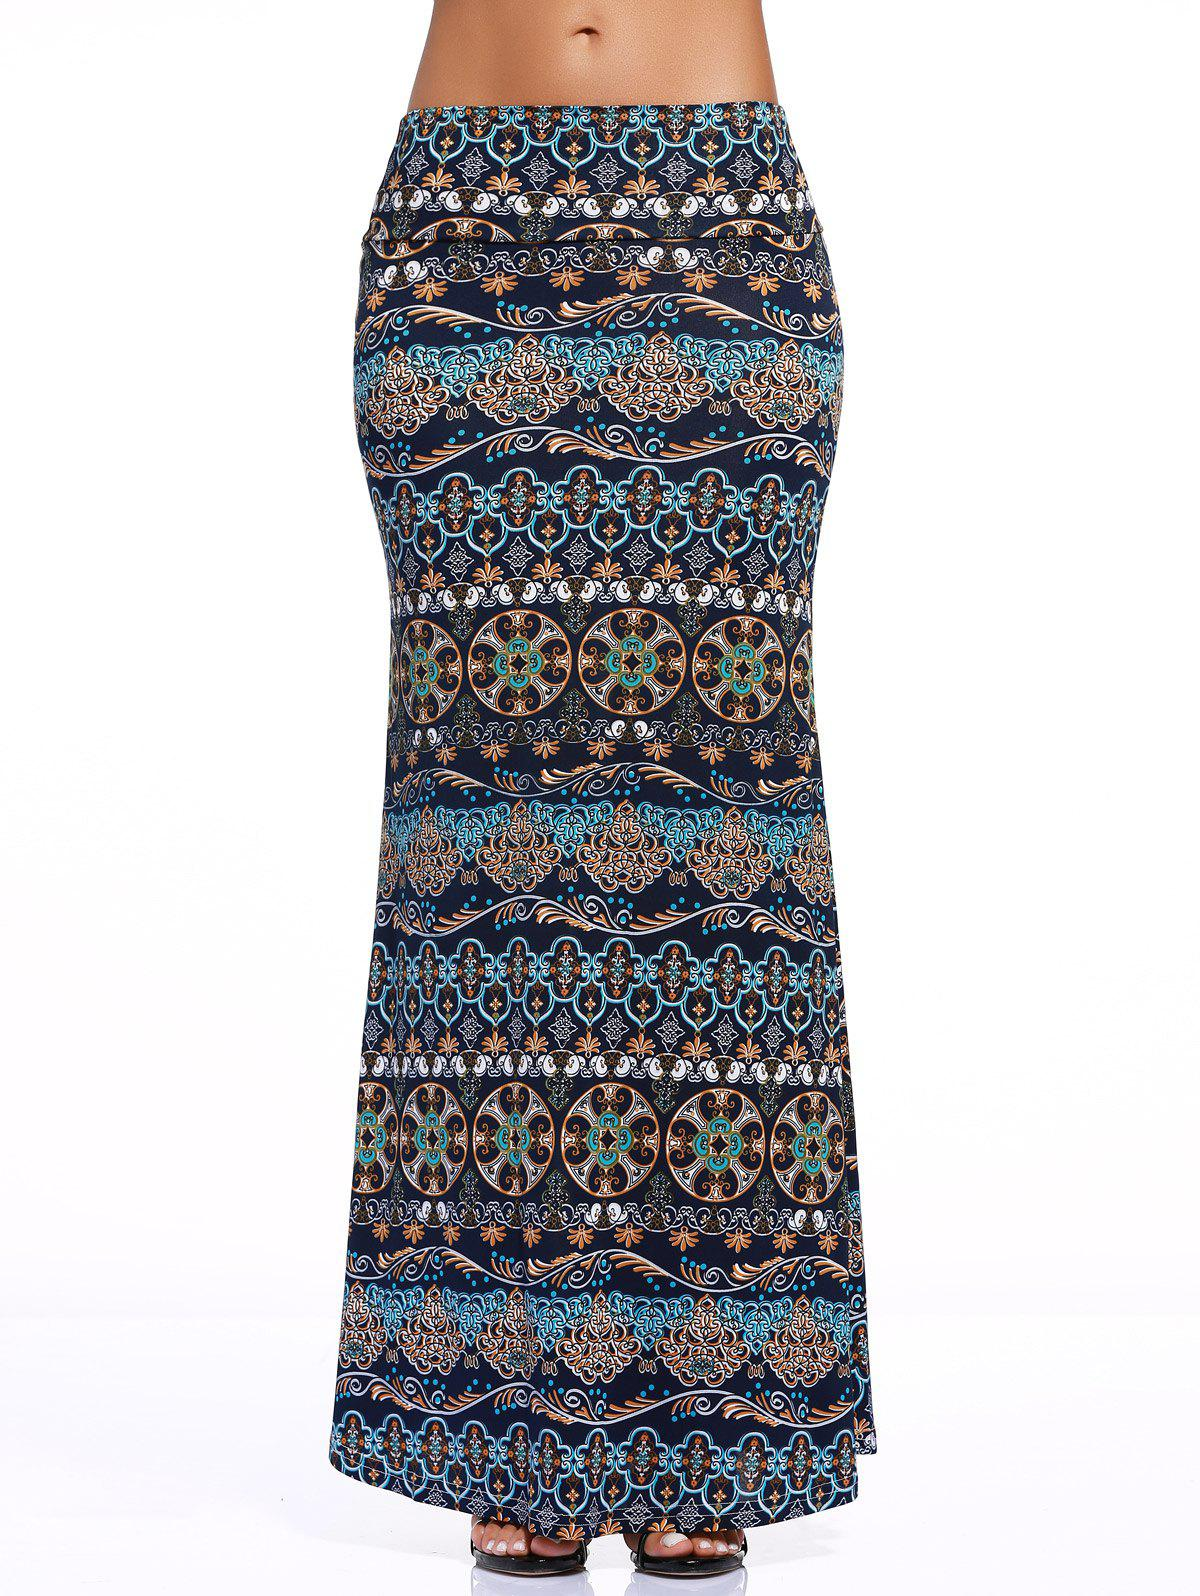 Chic Tribe Print Over Hip Skirt For WomenWomen<br><br><br>Size: 3XL<br>Color: COLORMIX